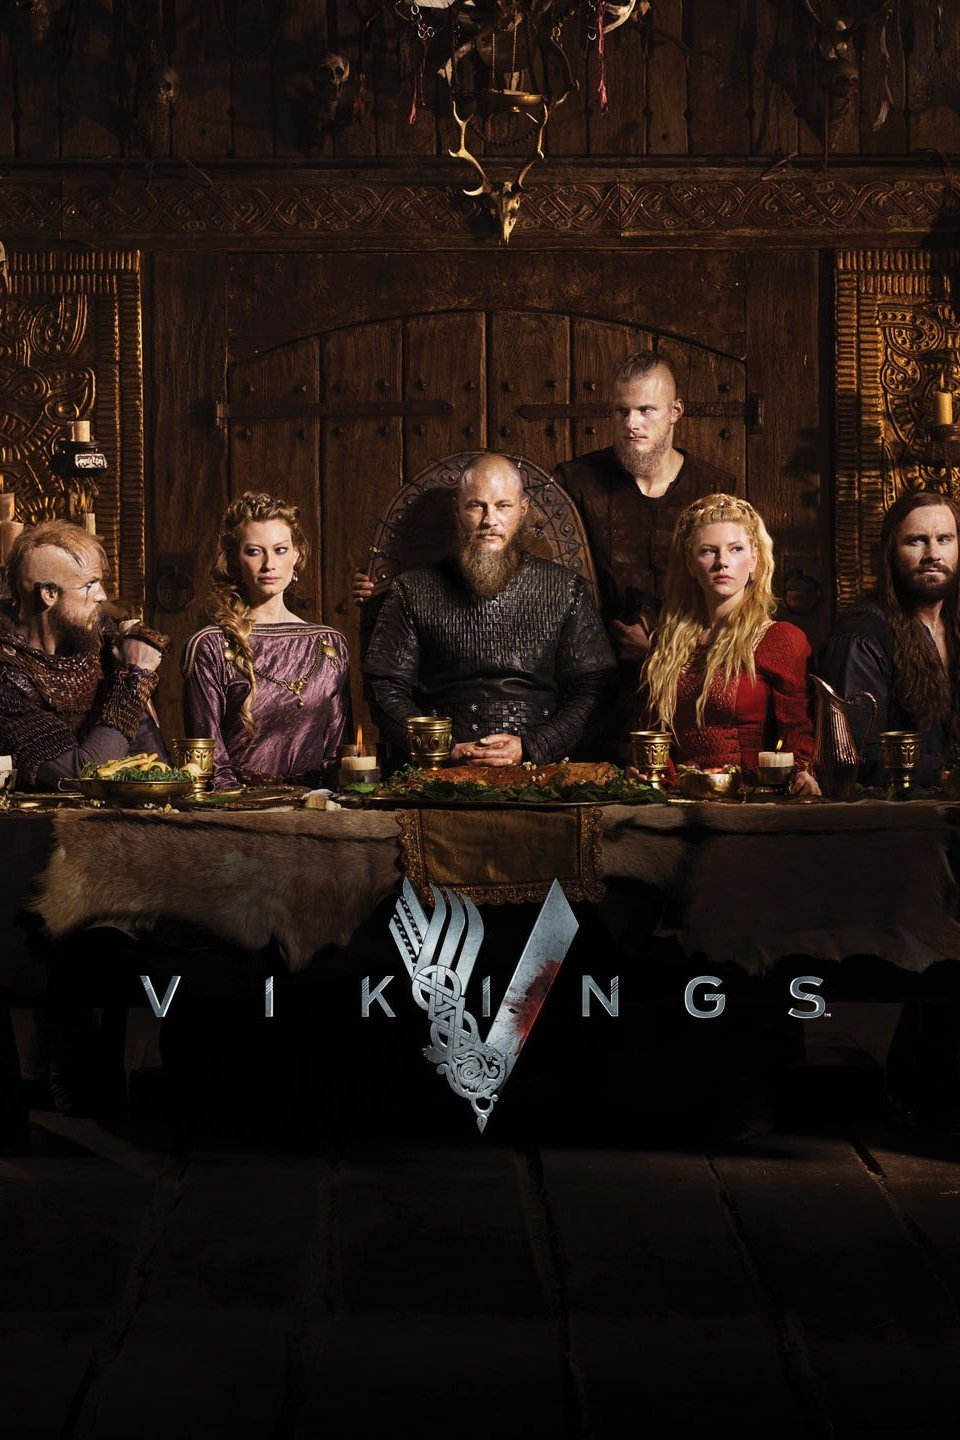 Watch Vikings season 4 complate